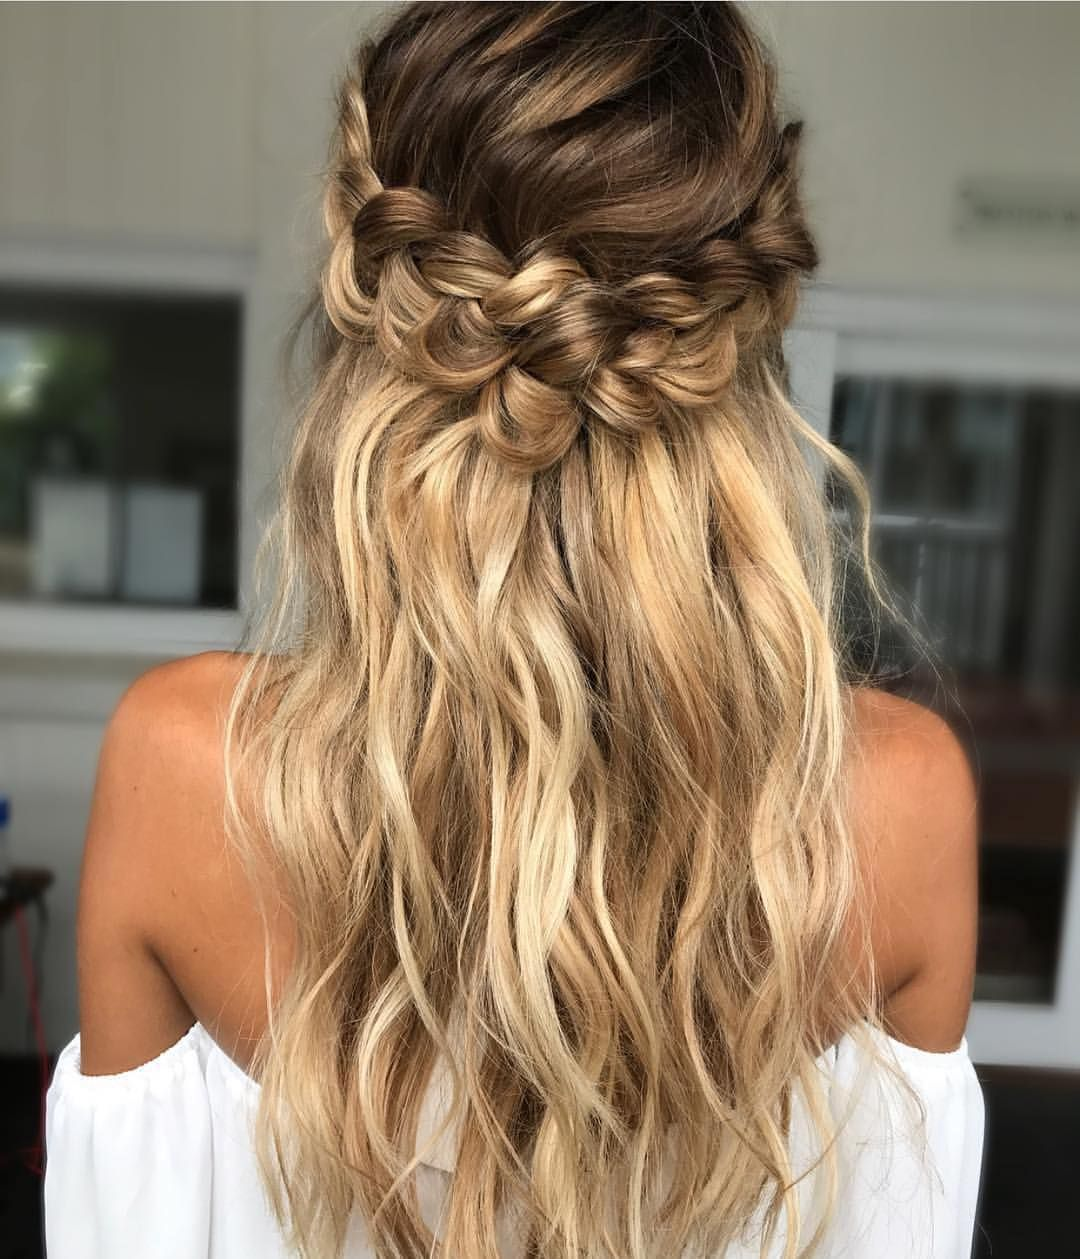 Pin by tabatha morris on hair and makeup pinterest hair goals